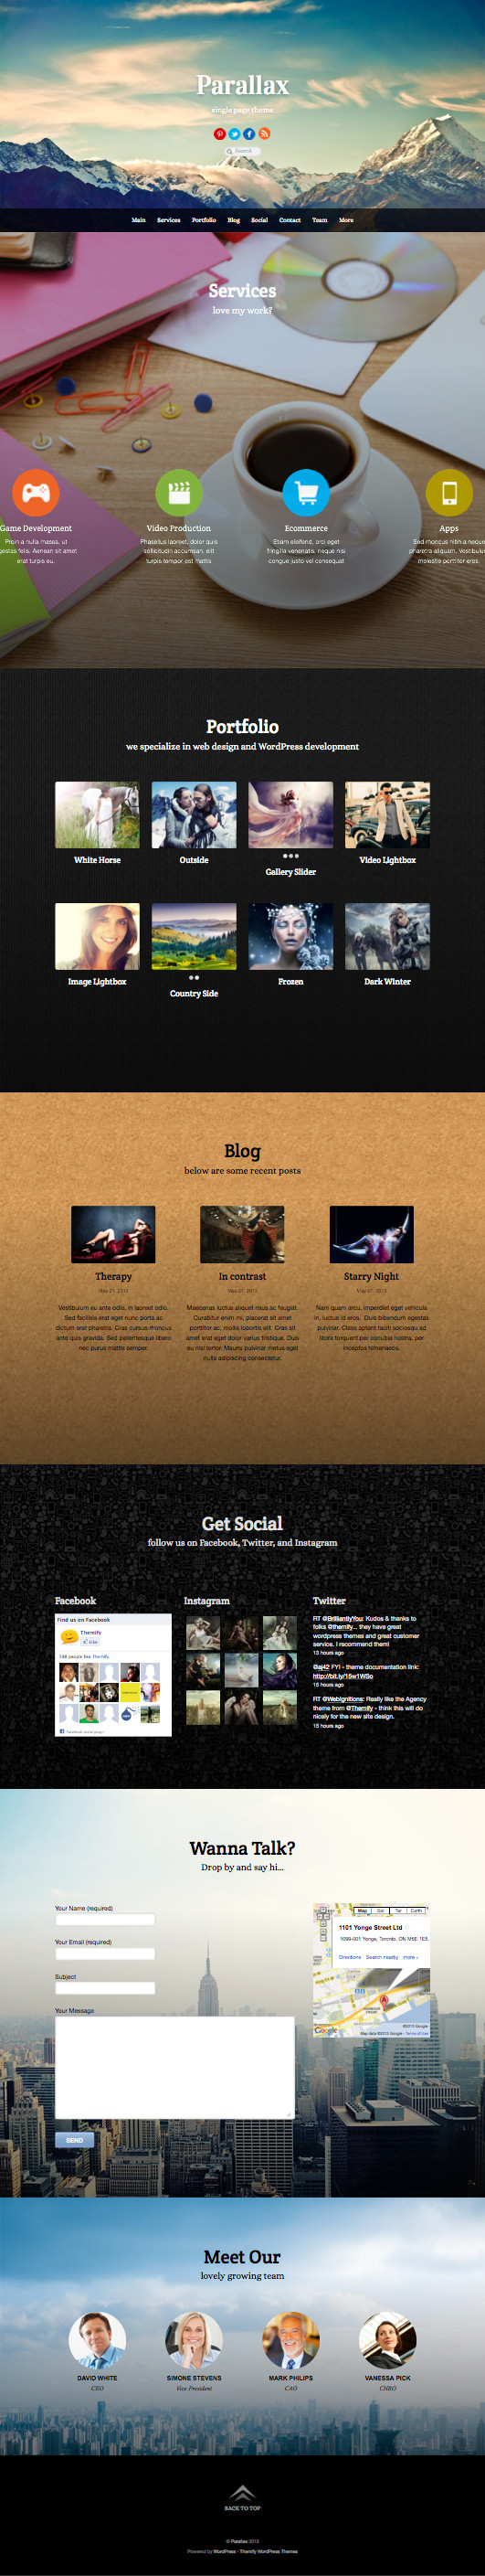 One Page Business Wordpress Theme A Intuitive And Fully Responsive Design Business Websi Business Website Templates Business Wordpress Themes Custom Portfolio